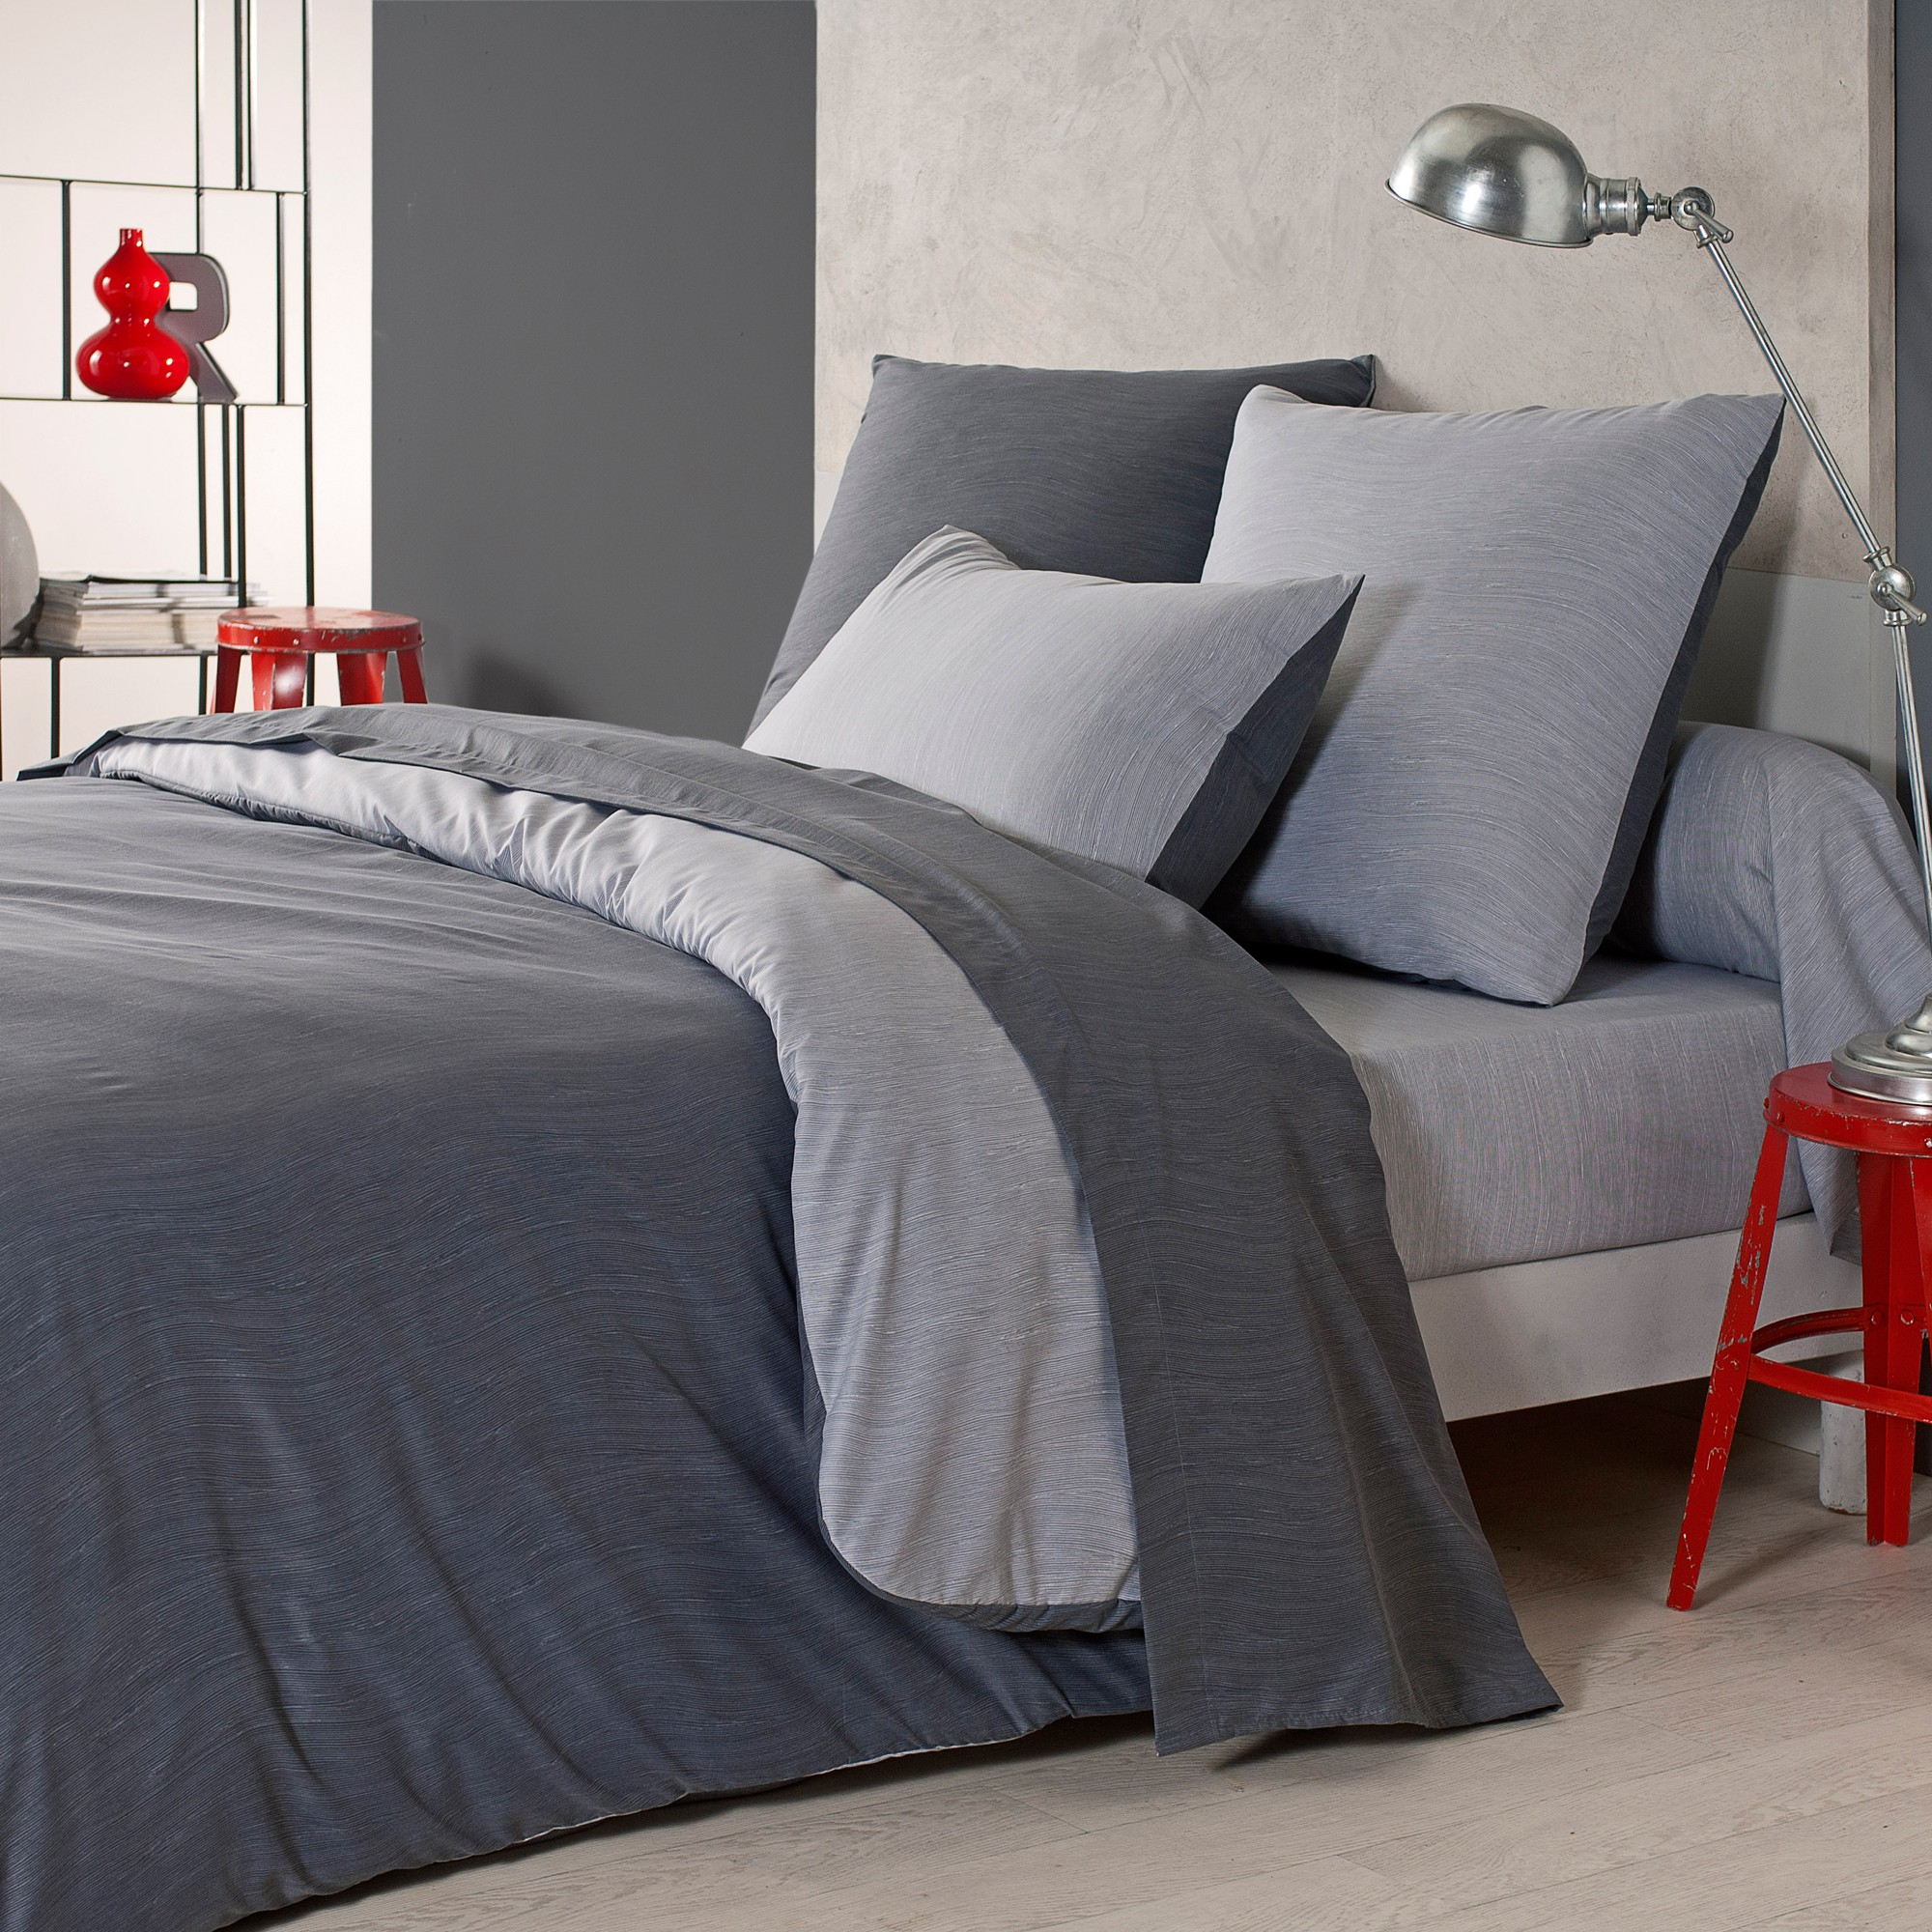 linge de lit vague microfibre blancheporte. Black Bedroom Furniture Sets. Home Design Ideas